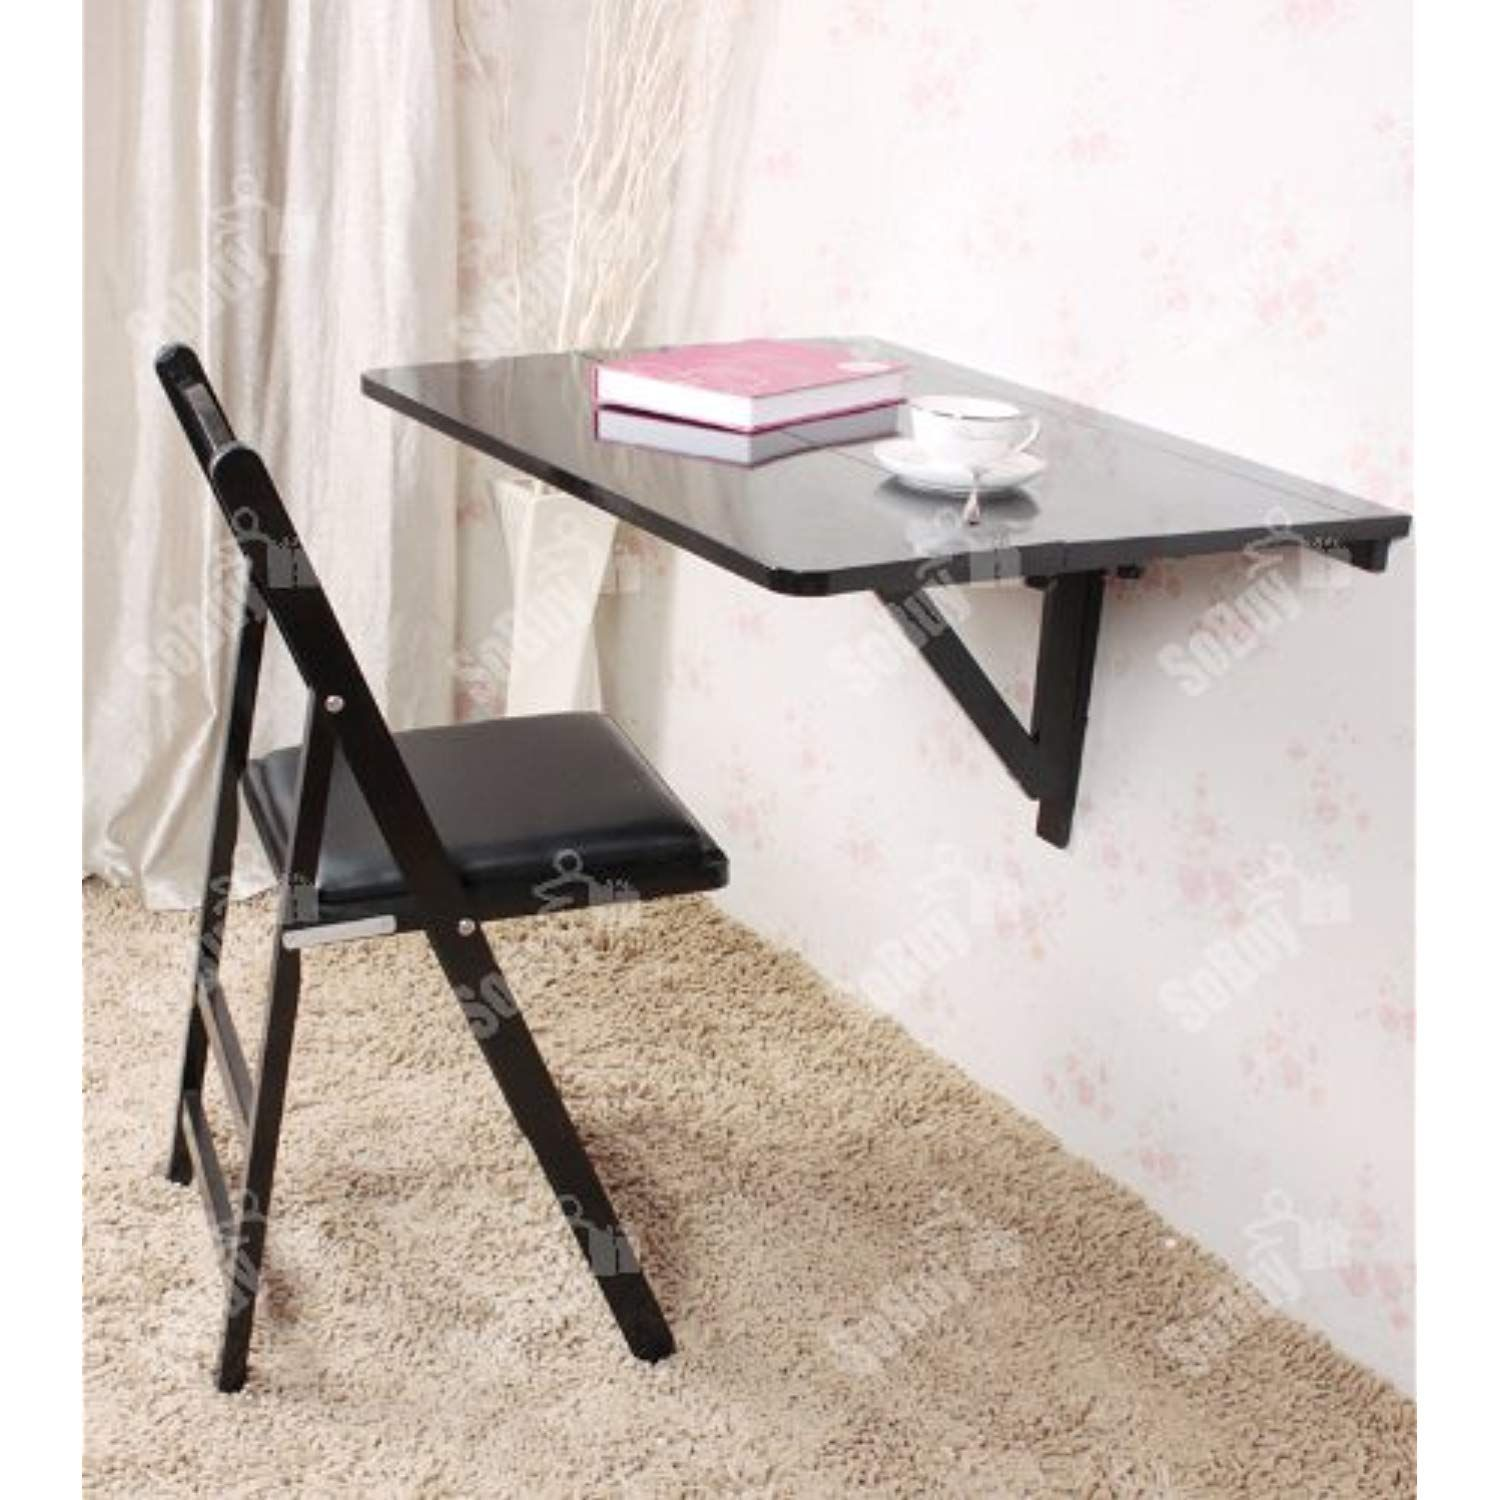 Haotian Wall Mounted Drop Leaf Table Double Folding Kitchen And Dining Solid Wood Table Desk 80cm 31 Wall Mounted Table Drop Leaf Table Leaf Table